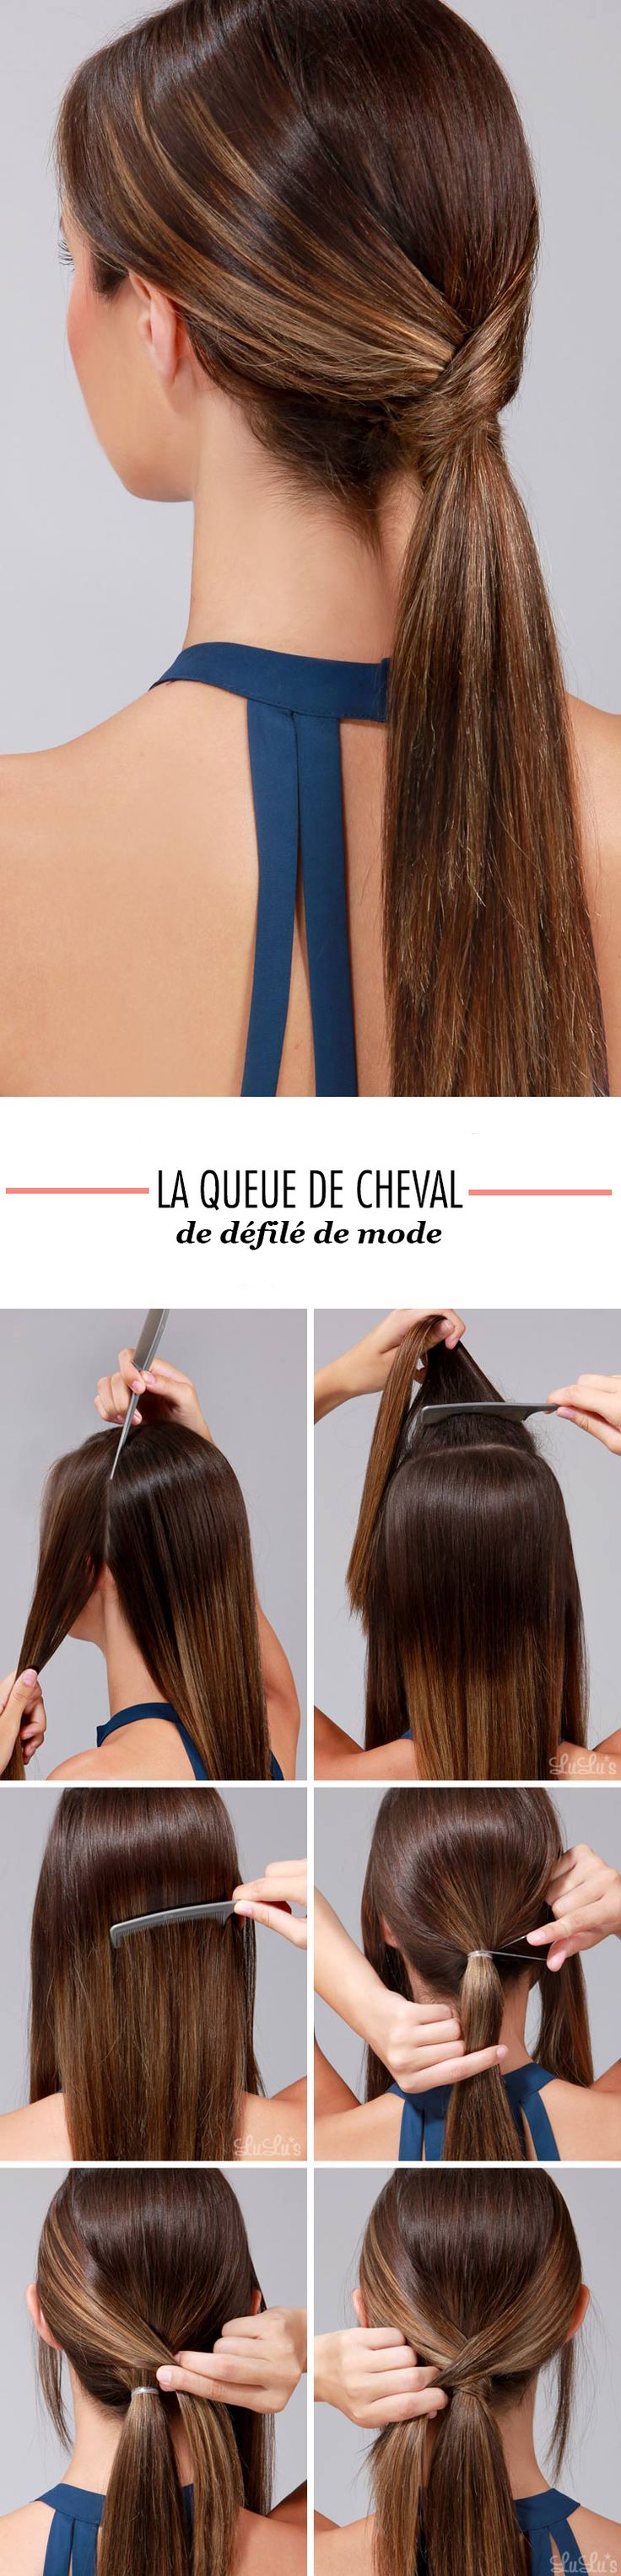 tuto queue de cheval défilé